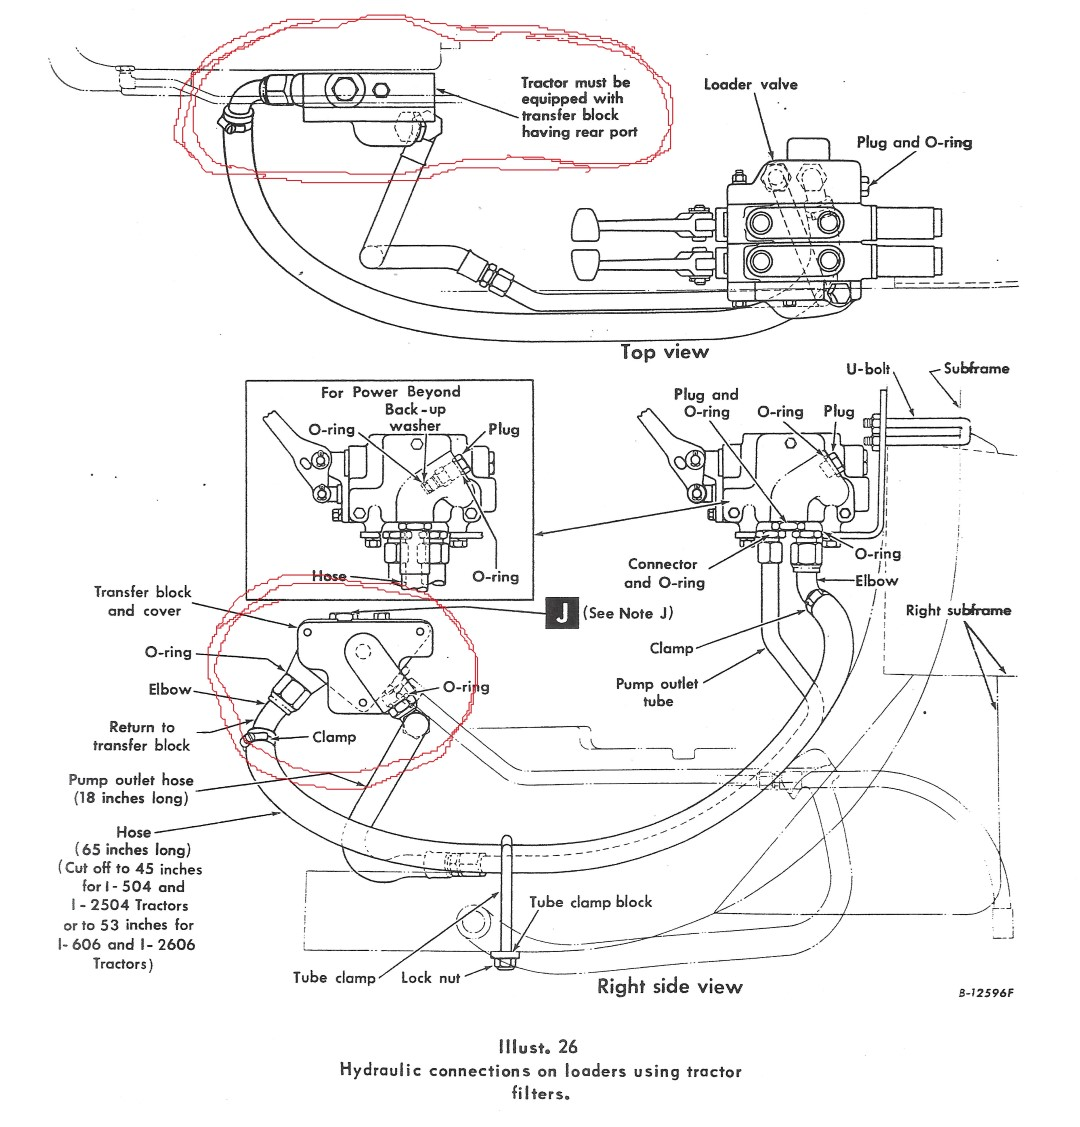 Hydraulic Hose Diagram Farmall Tractor Custom Wiring Ih 560 Adding Remote Connecters To 504 Built Without Any General Rh Redpowermagazine Com 450 140